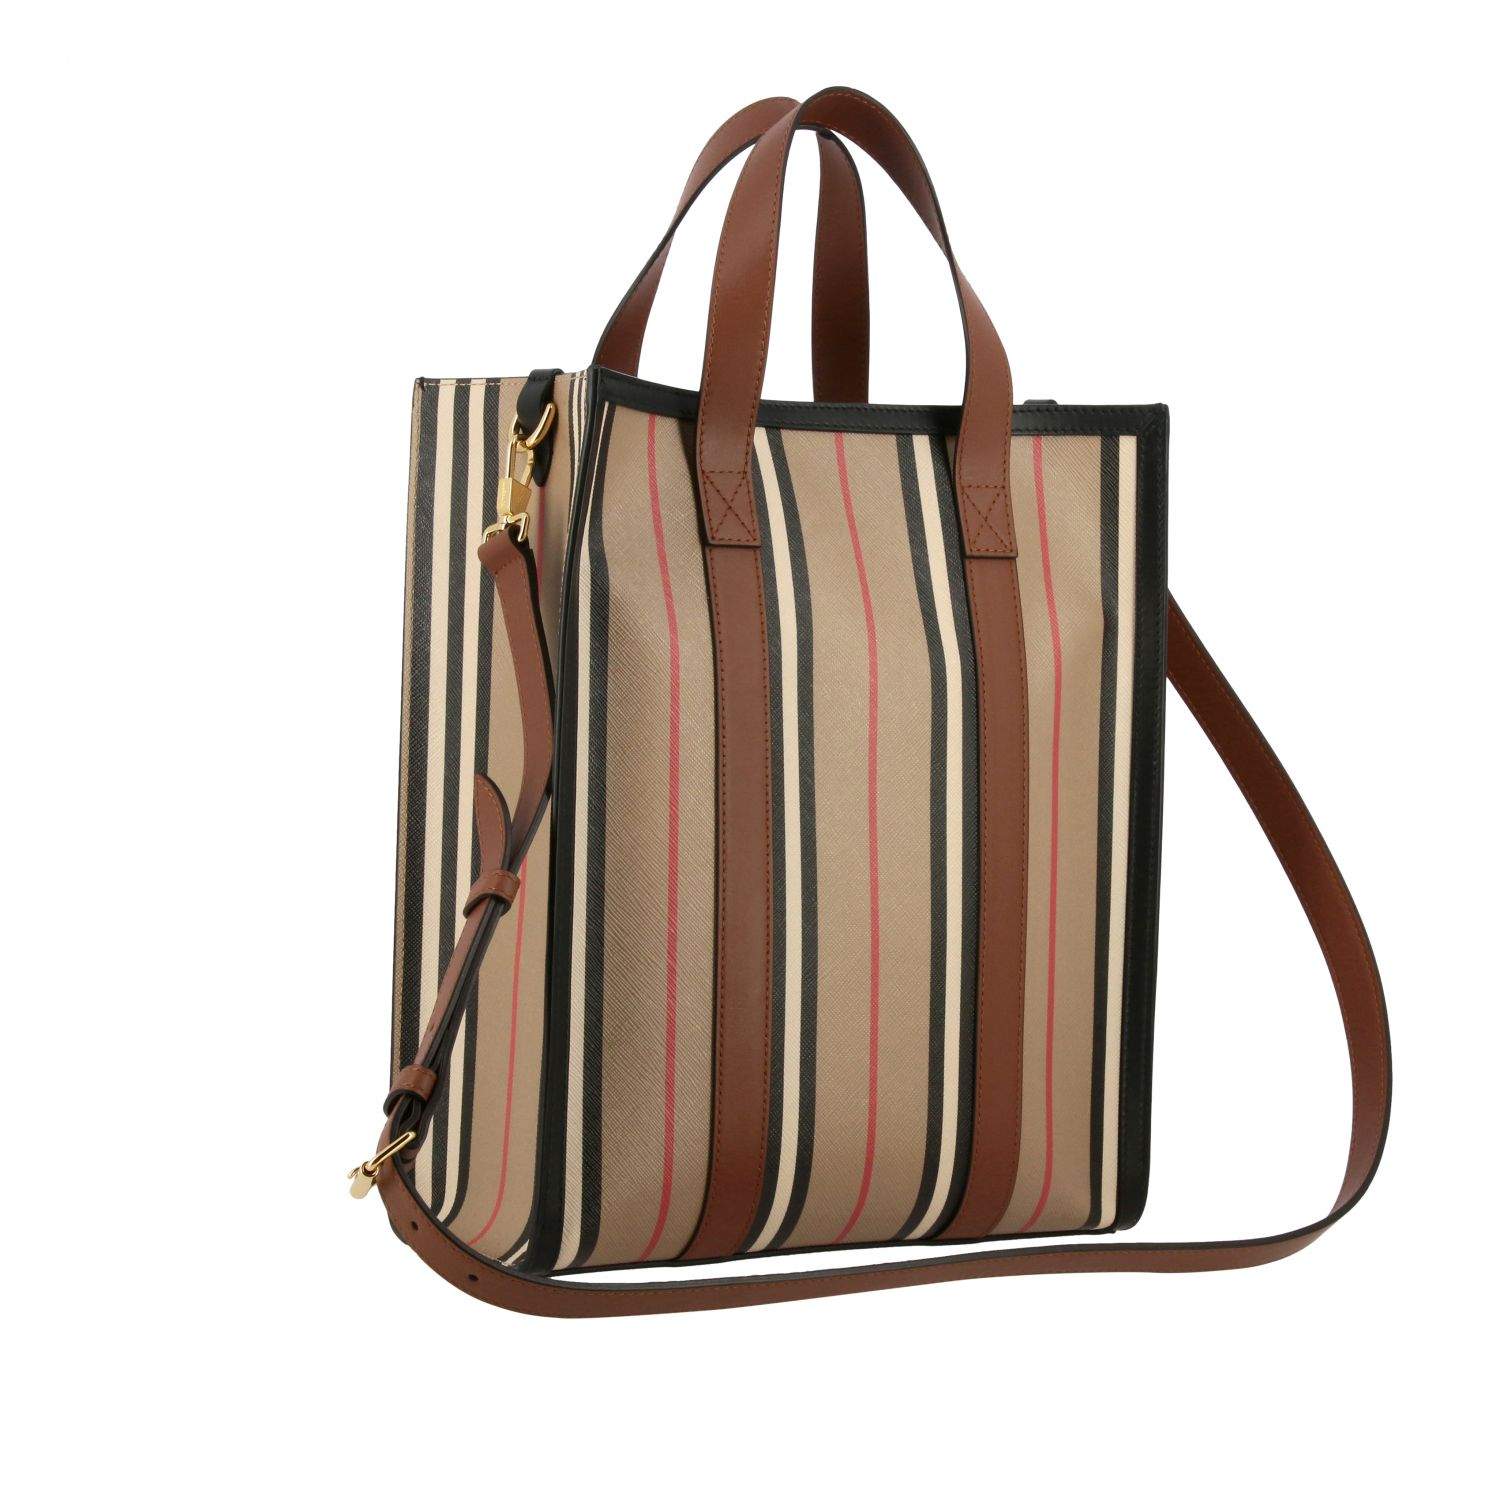 Borsa Book tote shopping Burberry in pelle a righe vintage beige 3